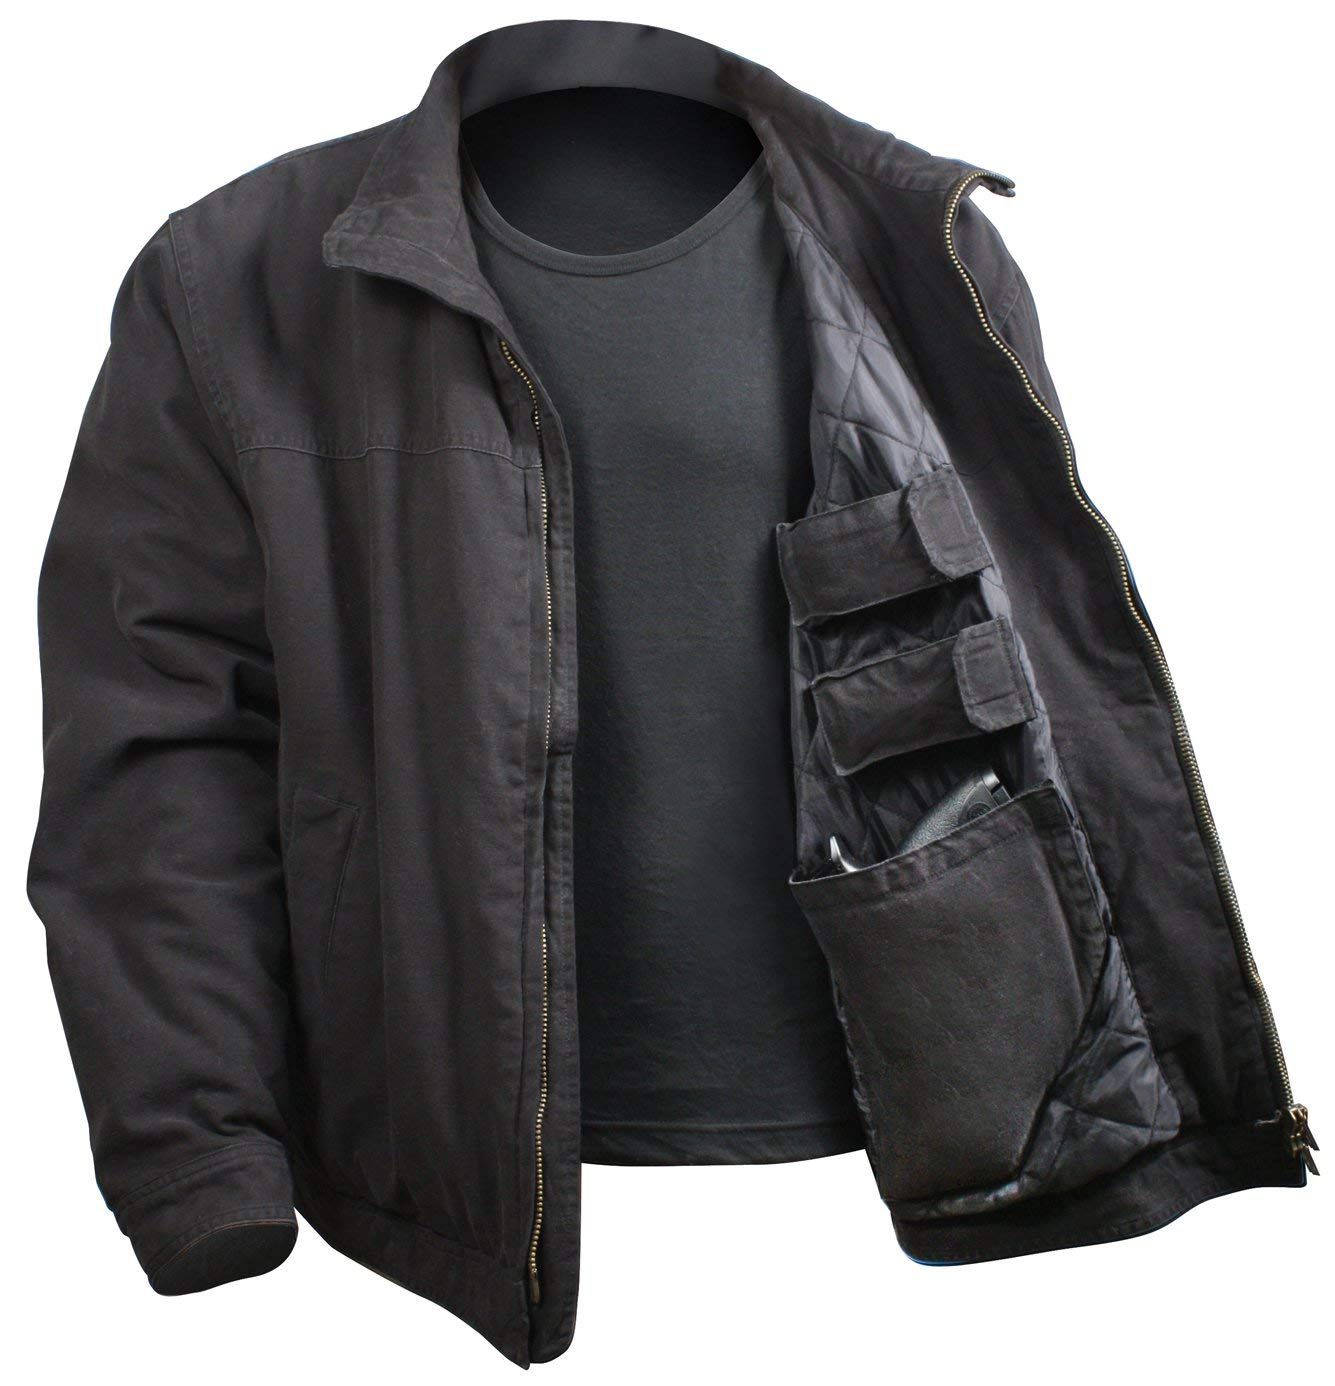 Rothco 3 Season Concealed Carry Jacket - Black - Large - 5385-BLACK-L